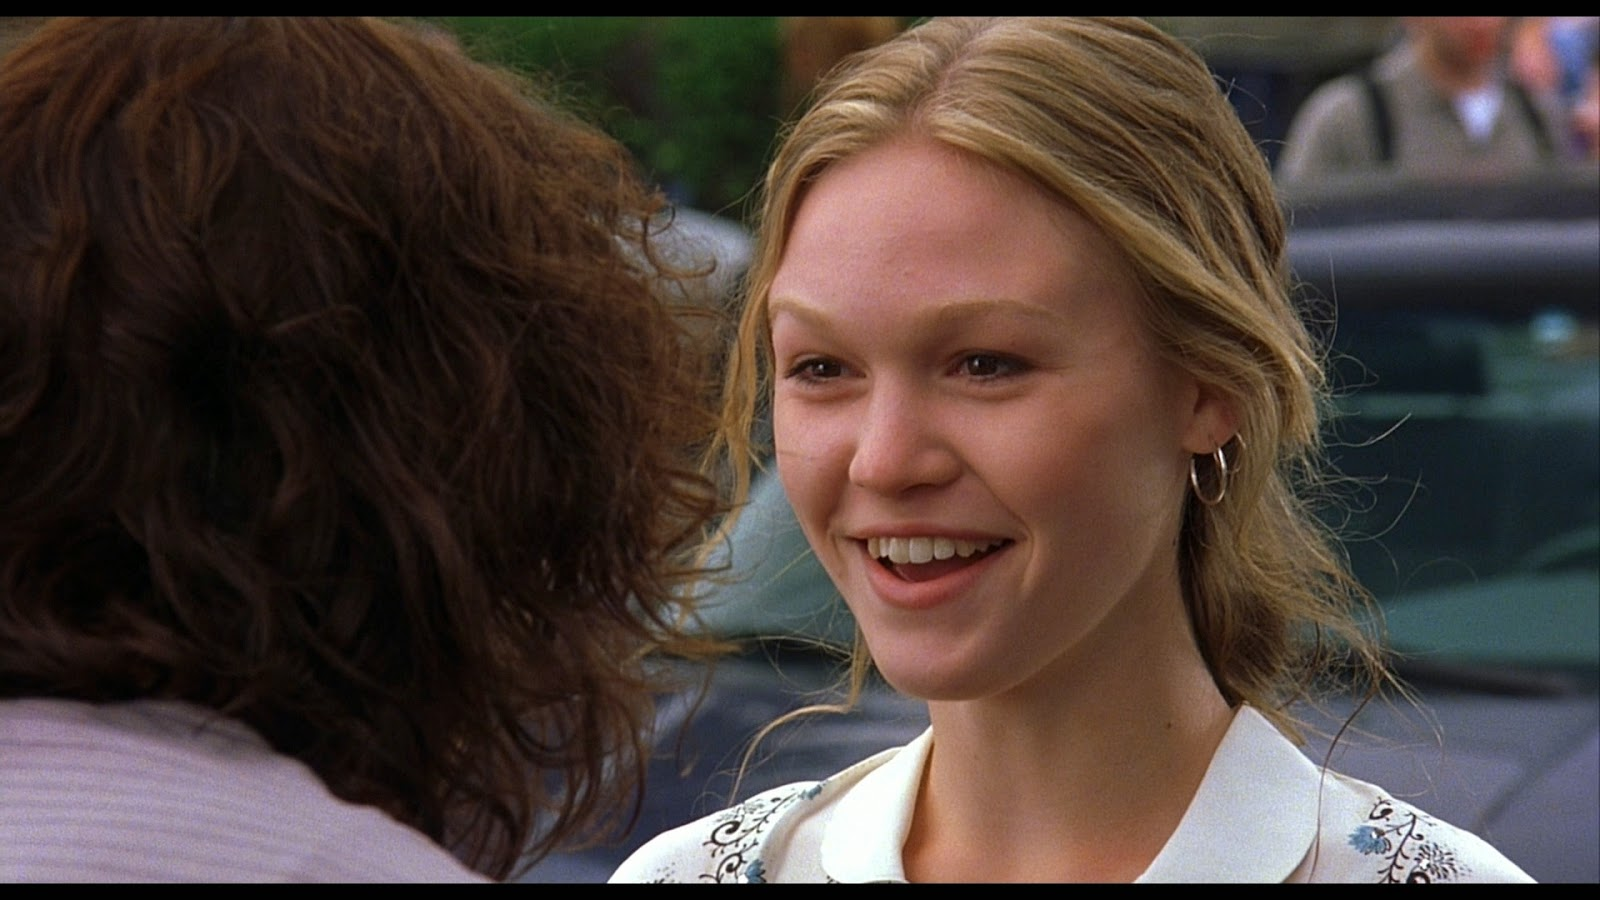 10 Things I Hate About You Movie Quotes Quotesgram: Julia Stiles Quotes. QuotesGram